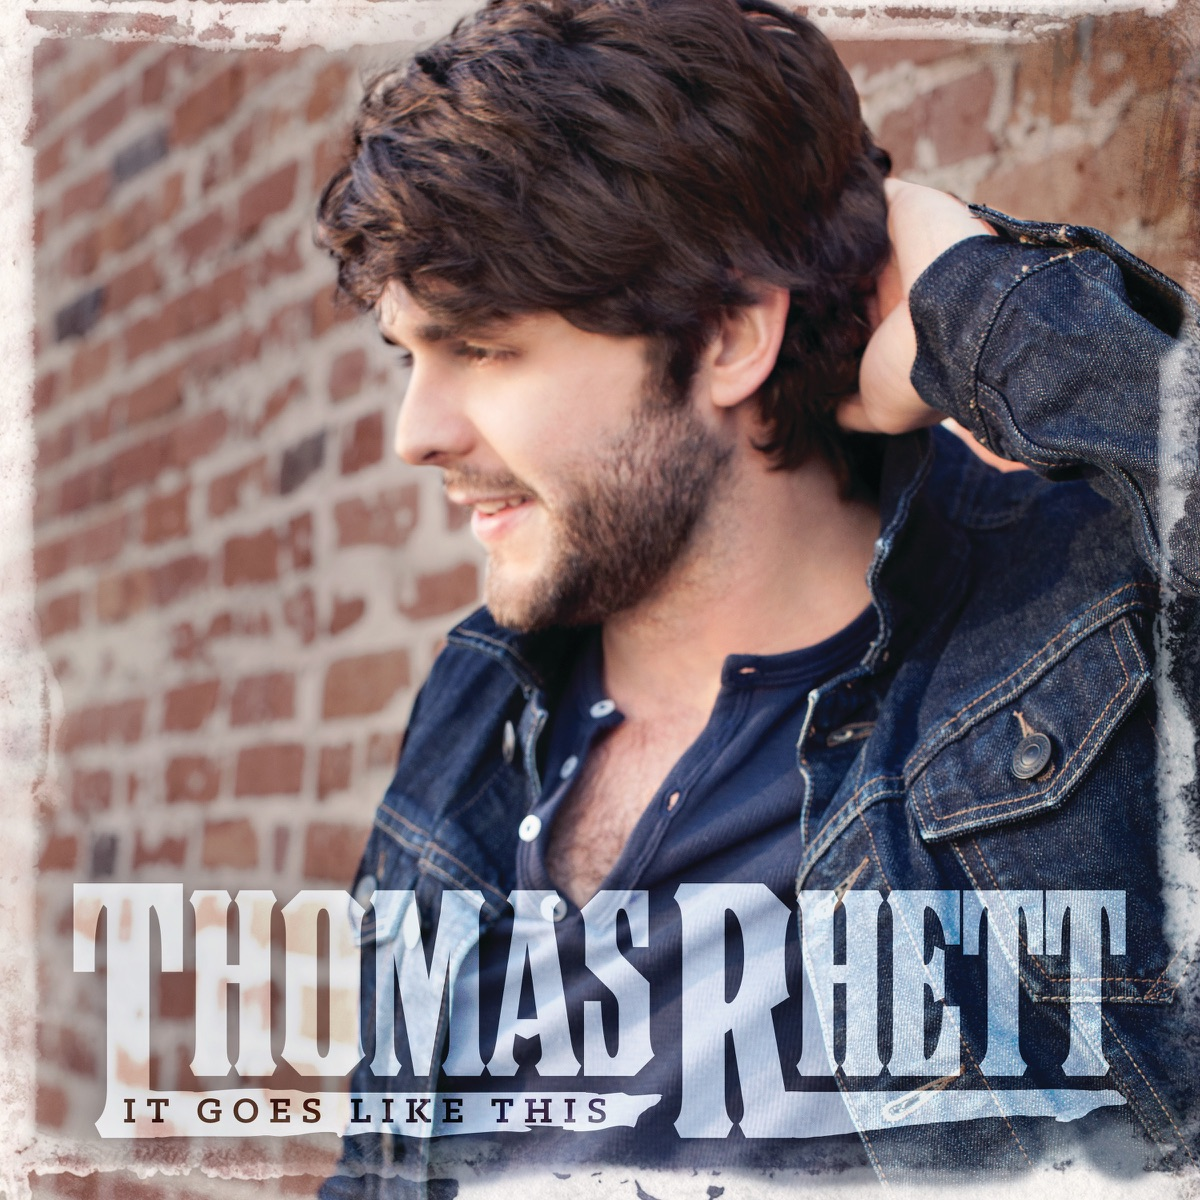 It Goes Like This Thomas Rhett CD cover